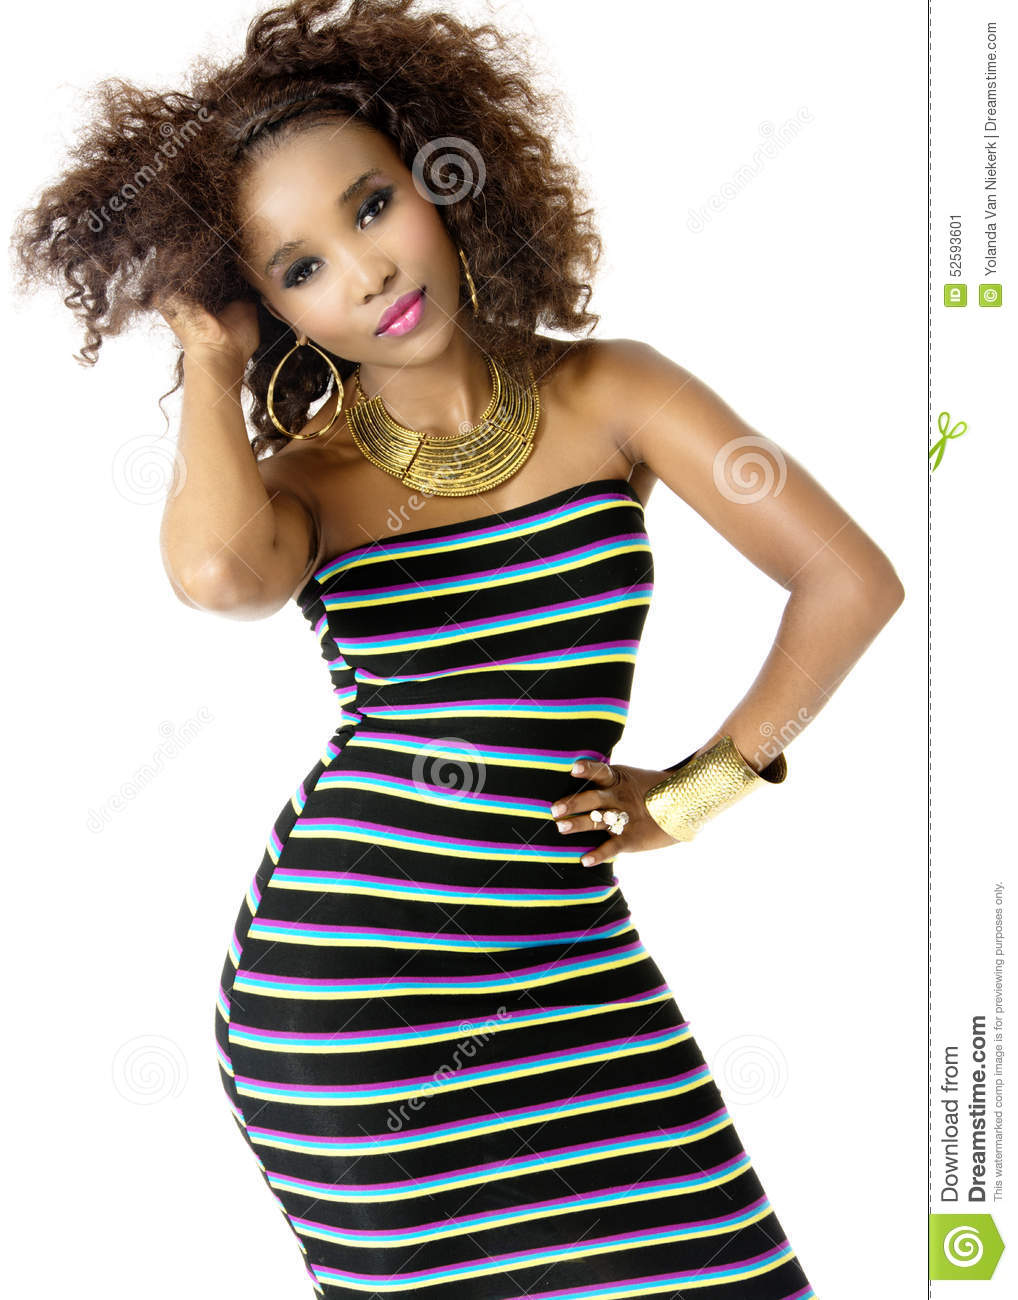 Wearing Striped Dress modèle féminin africain, bijoux d or